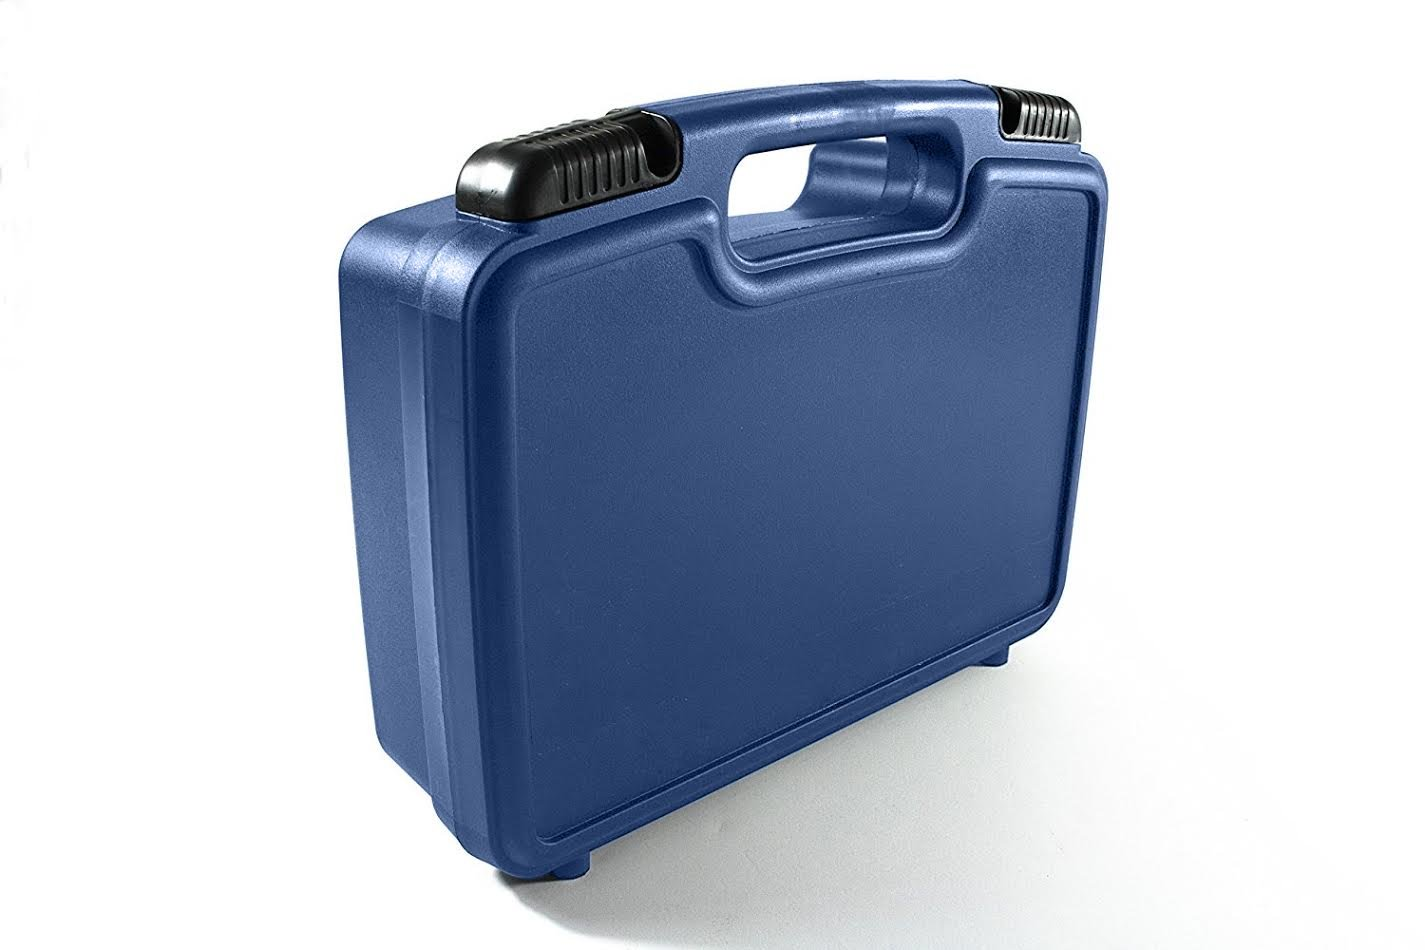 Life Made Better Storage Organizer - Compatible with Midland 75-822 40 Channel CB-Way Radio And Accessories- Durable Carrying Case - Blue by Life Made Better (Image #5)